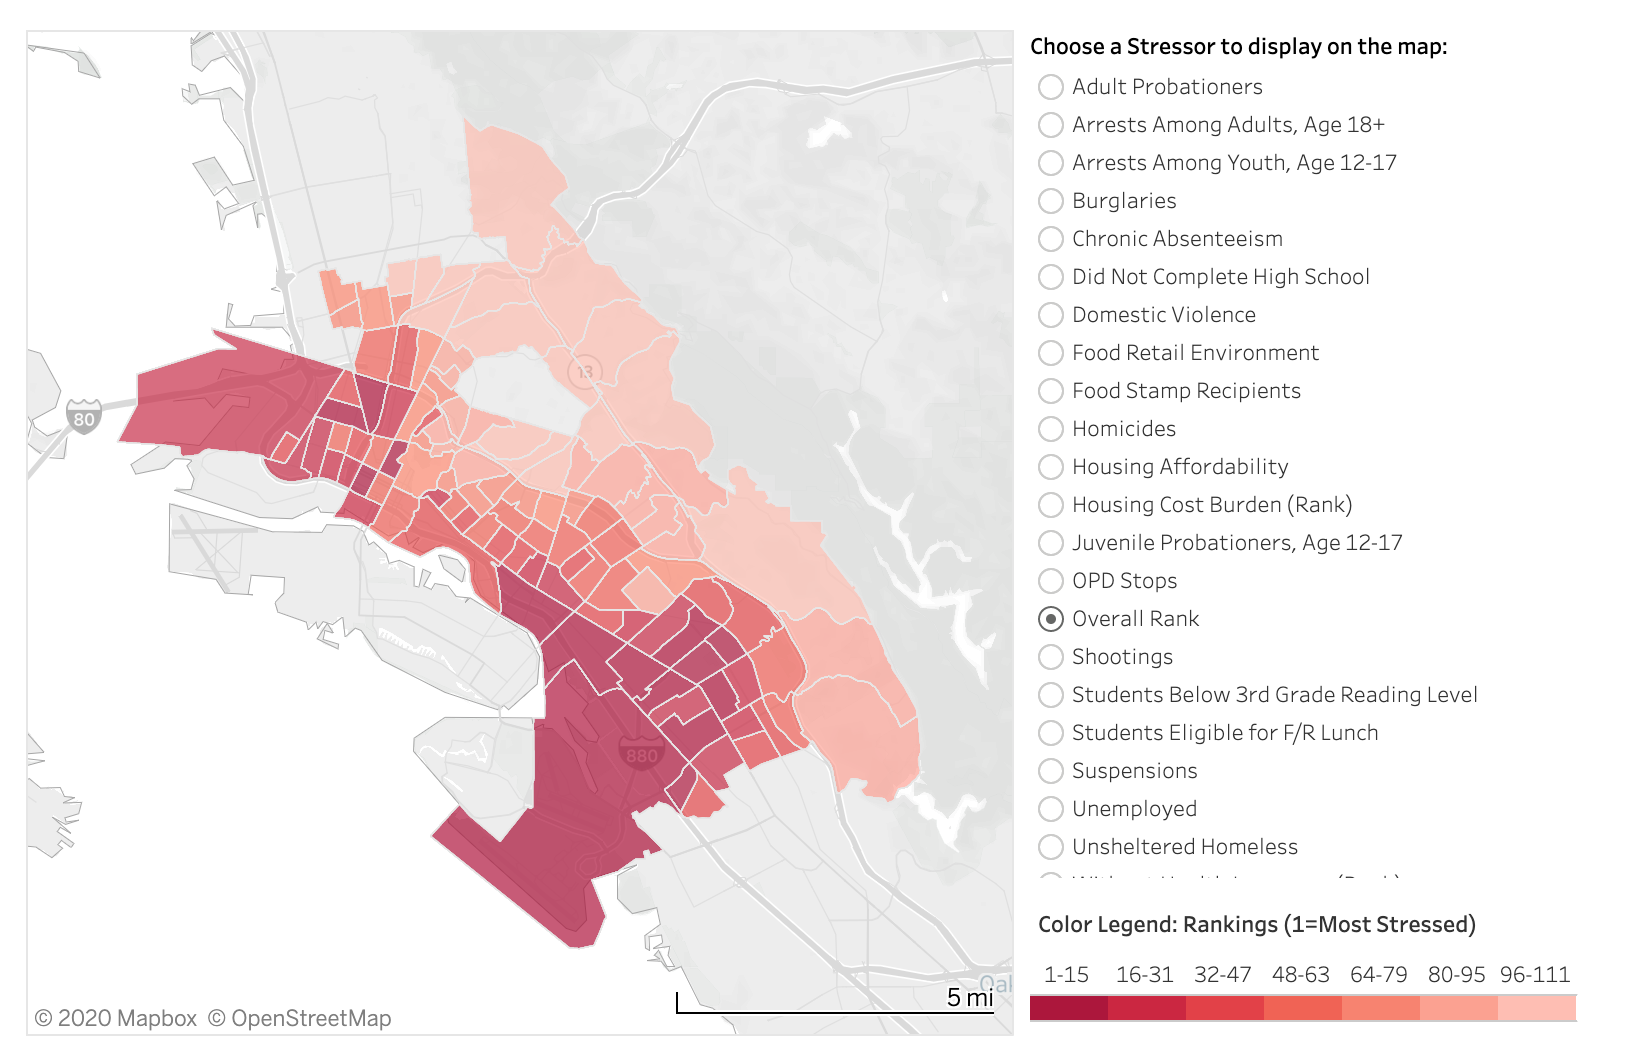 Oakland Community Stressors Index Image